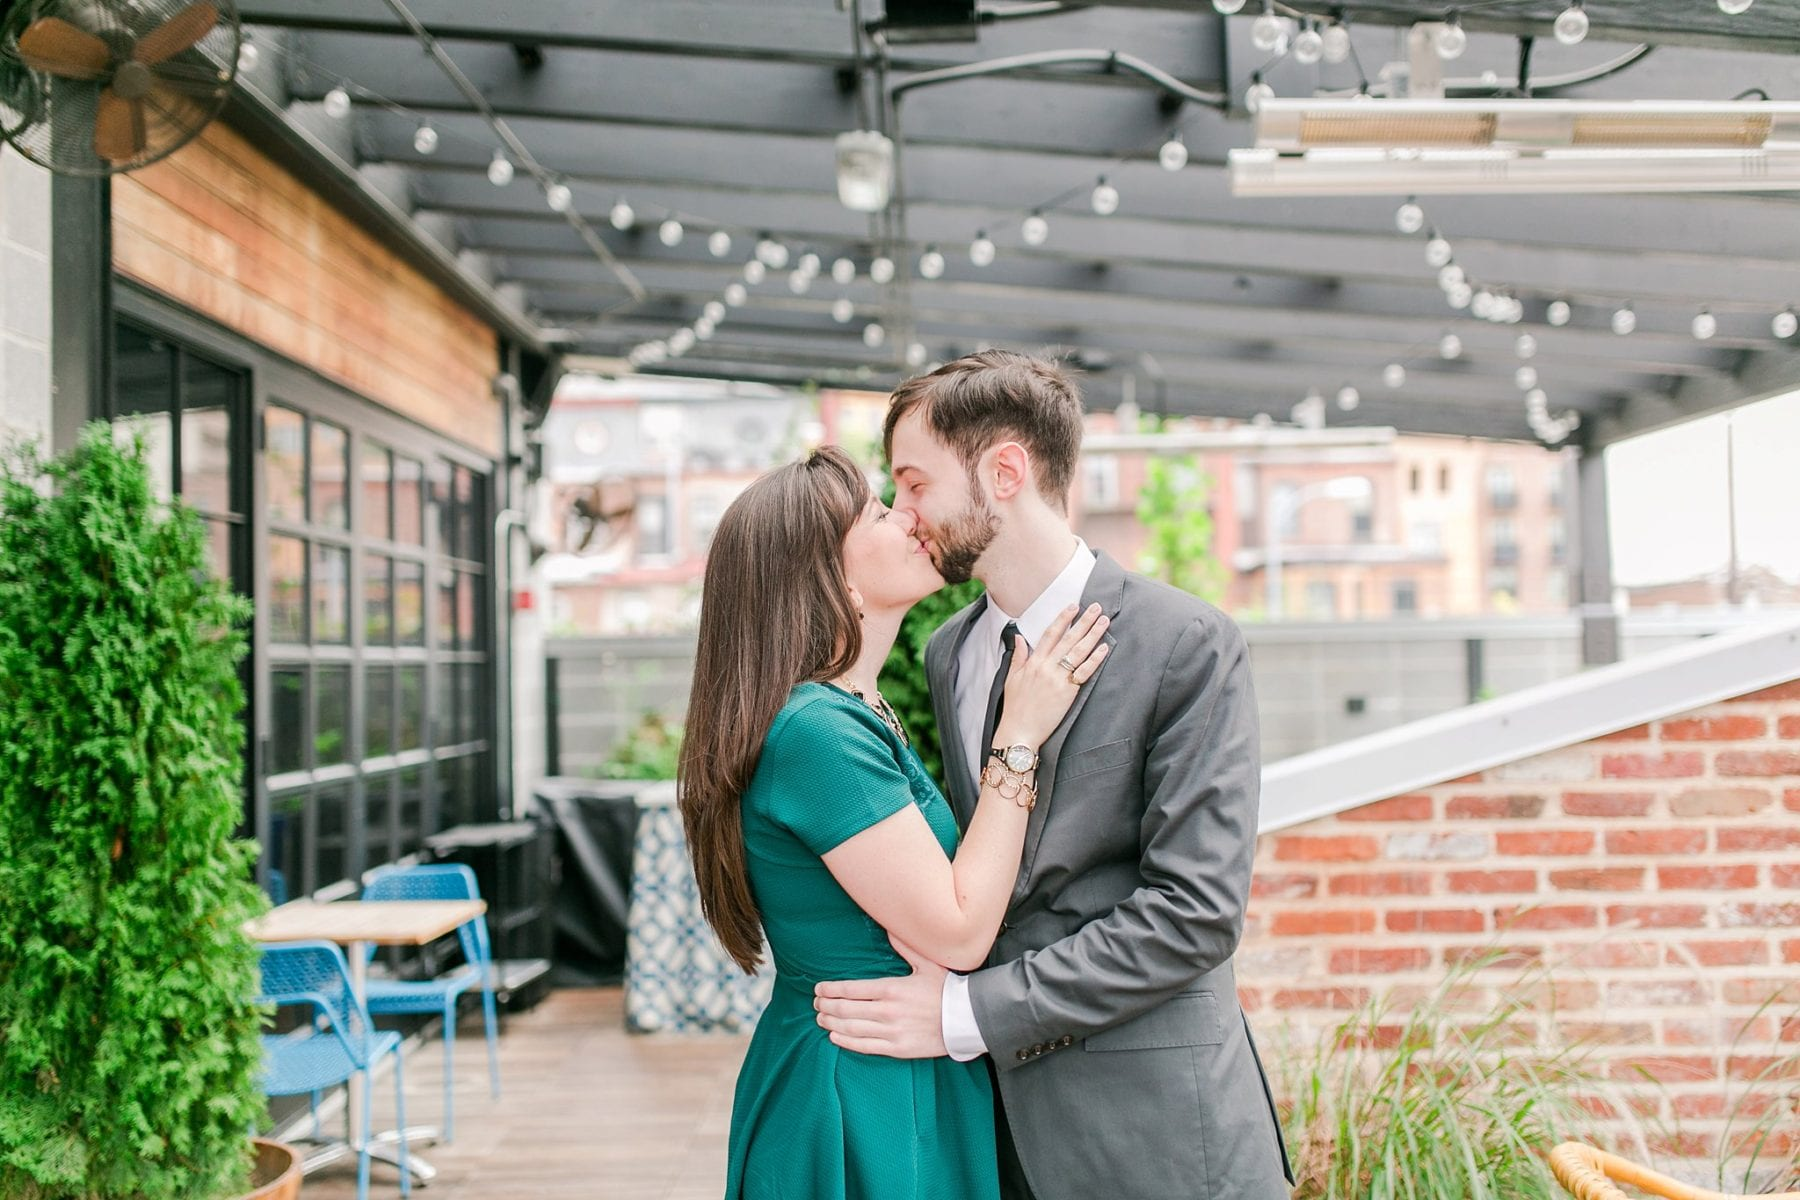 Downtown Washington DC Engagement Photos Megan Kelsey Photography Virginia Wedding Photographer Erin & Mike-0150.jpg